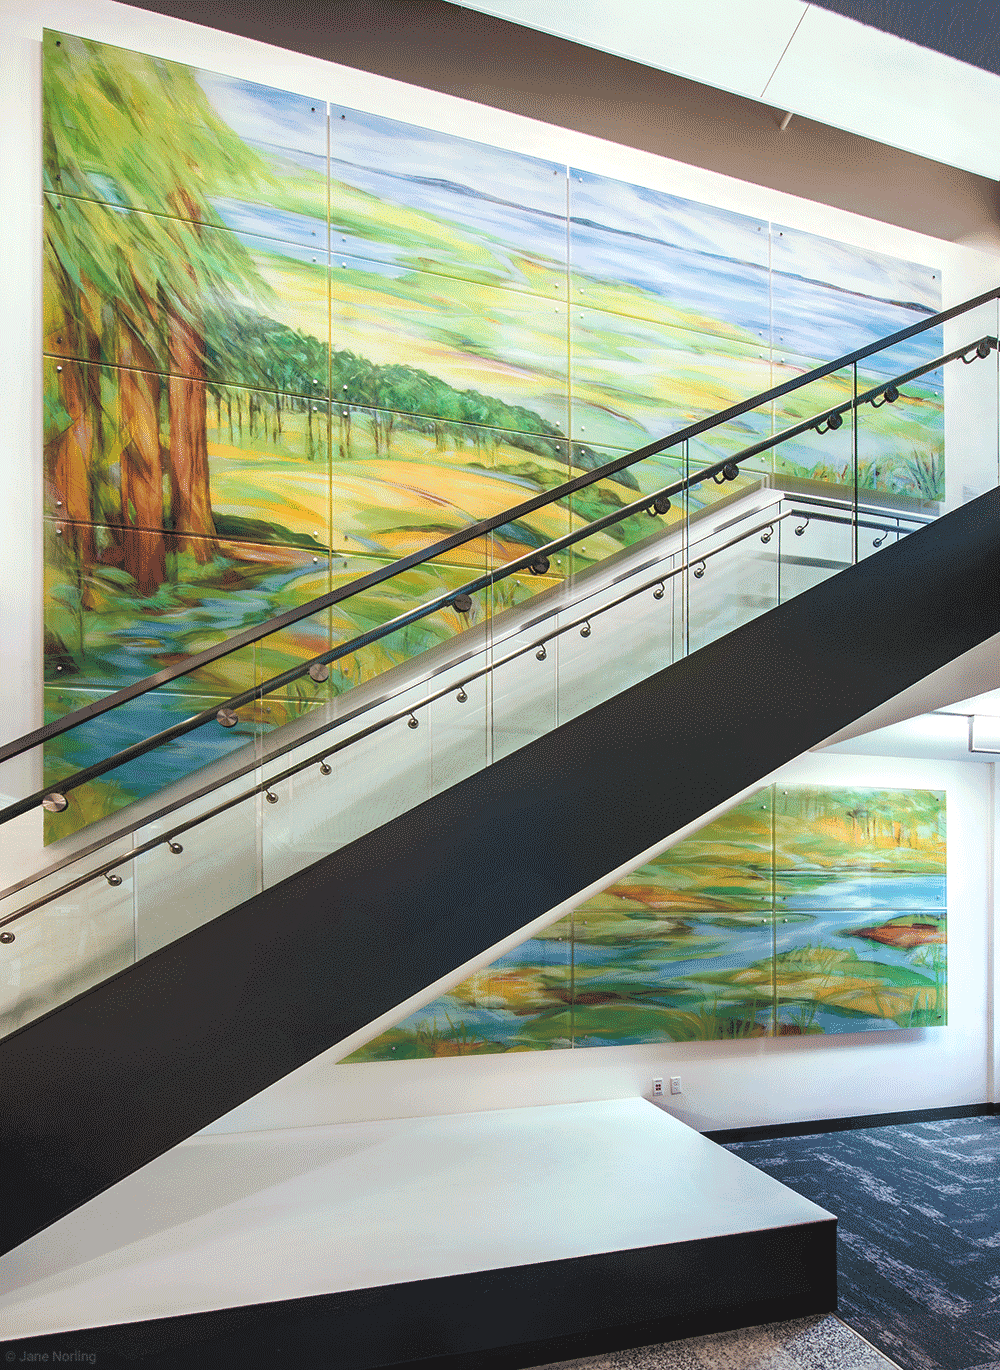 Alameda County Water , Lobby stairs, 15'x19'. Digital ceramic print on glass in six parts. 2016 commission, Alameda County Arts Commission.